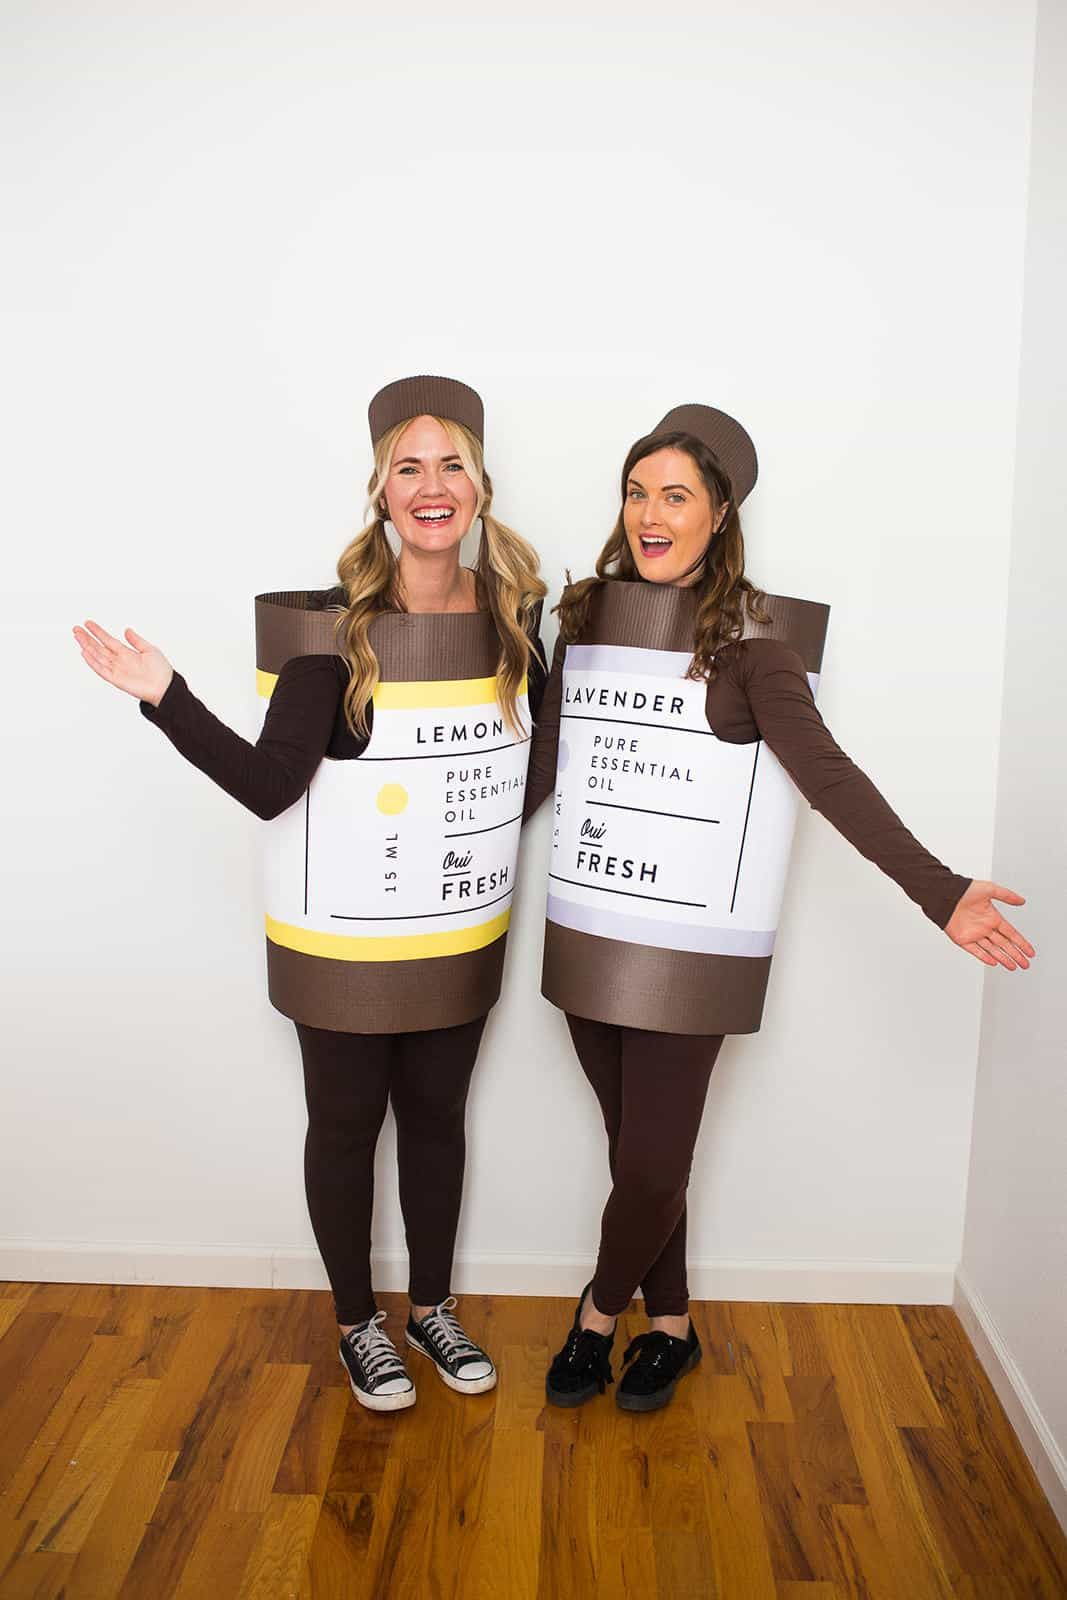 13/09/2021· colorful m&m costumes for teens. 49 Diy Teen Halloween Costume Ideas Easy Halloween Costumes For Teenagers